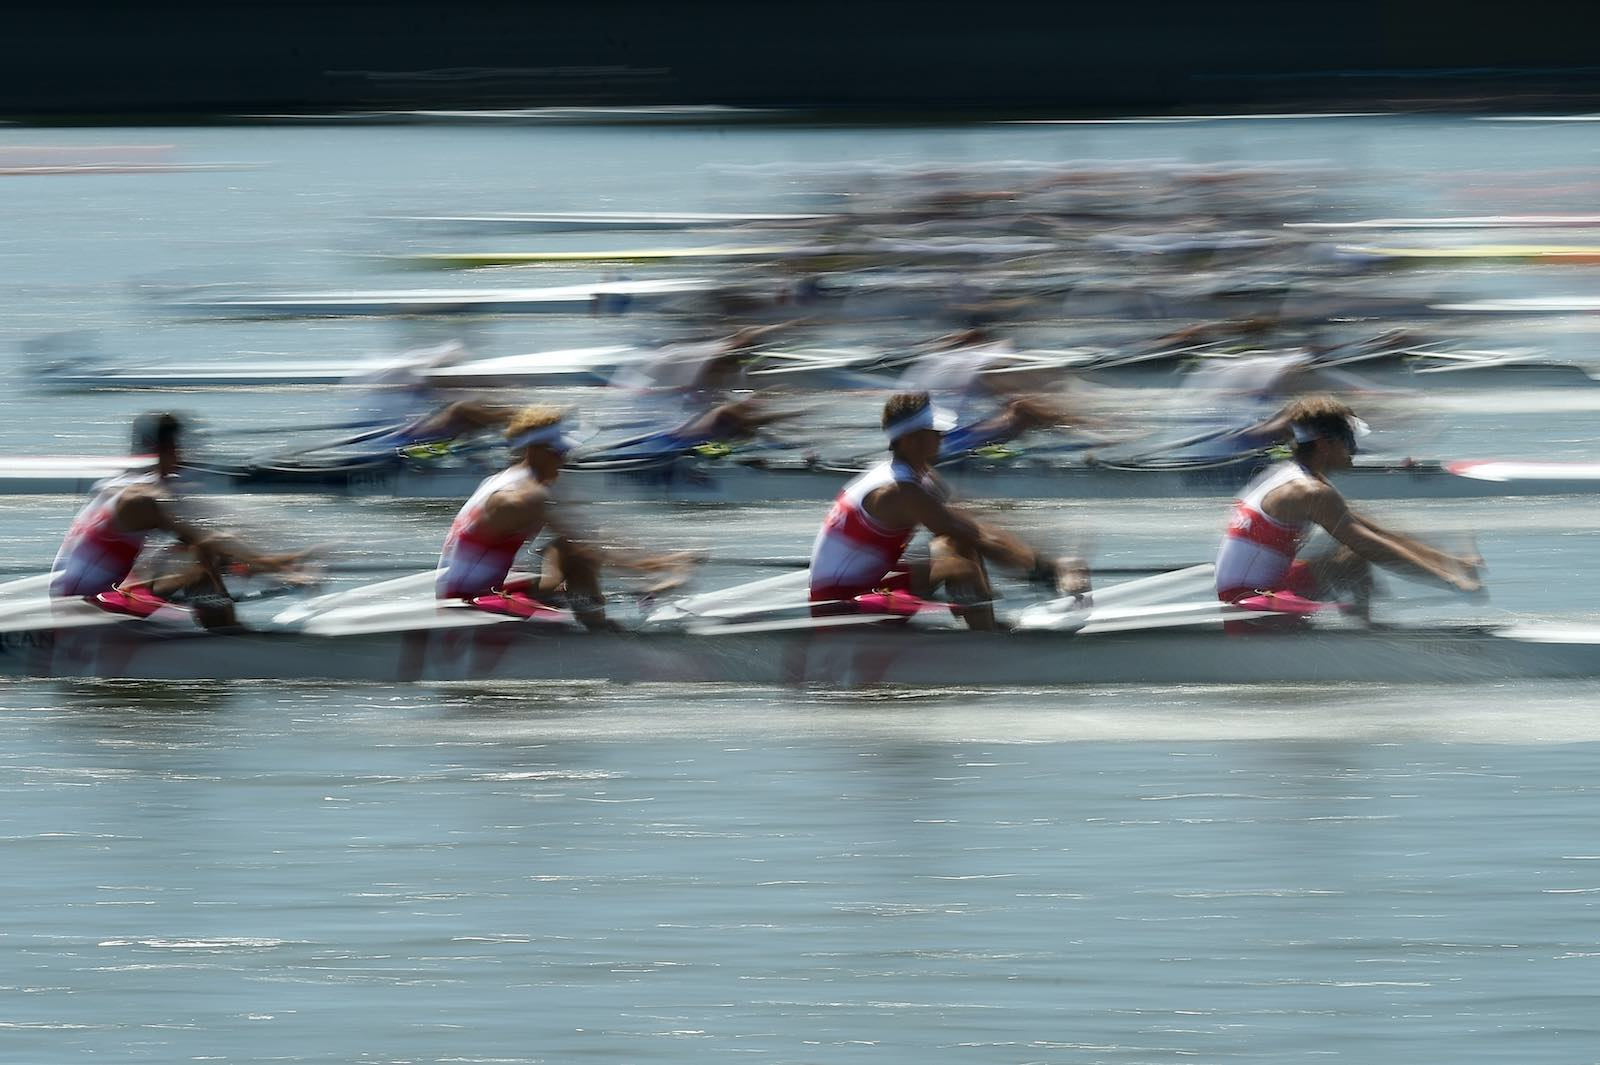 Heats during the 2019 World Rowing Junior Championships in Tokyo in preparation for the now-delayed 2020 Olympic Games (Matt Roberts/Getty Images)